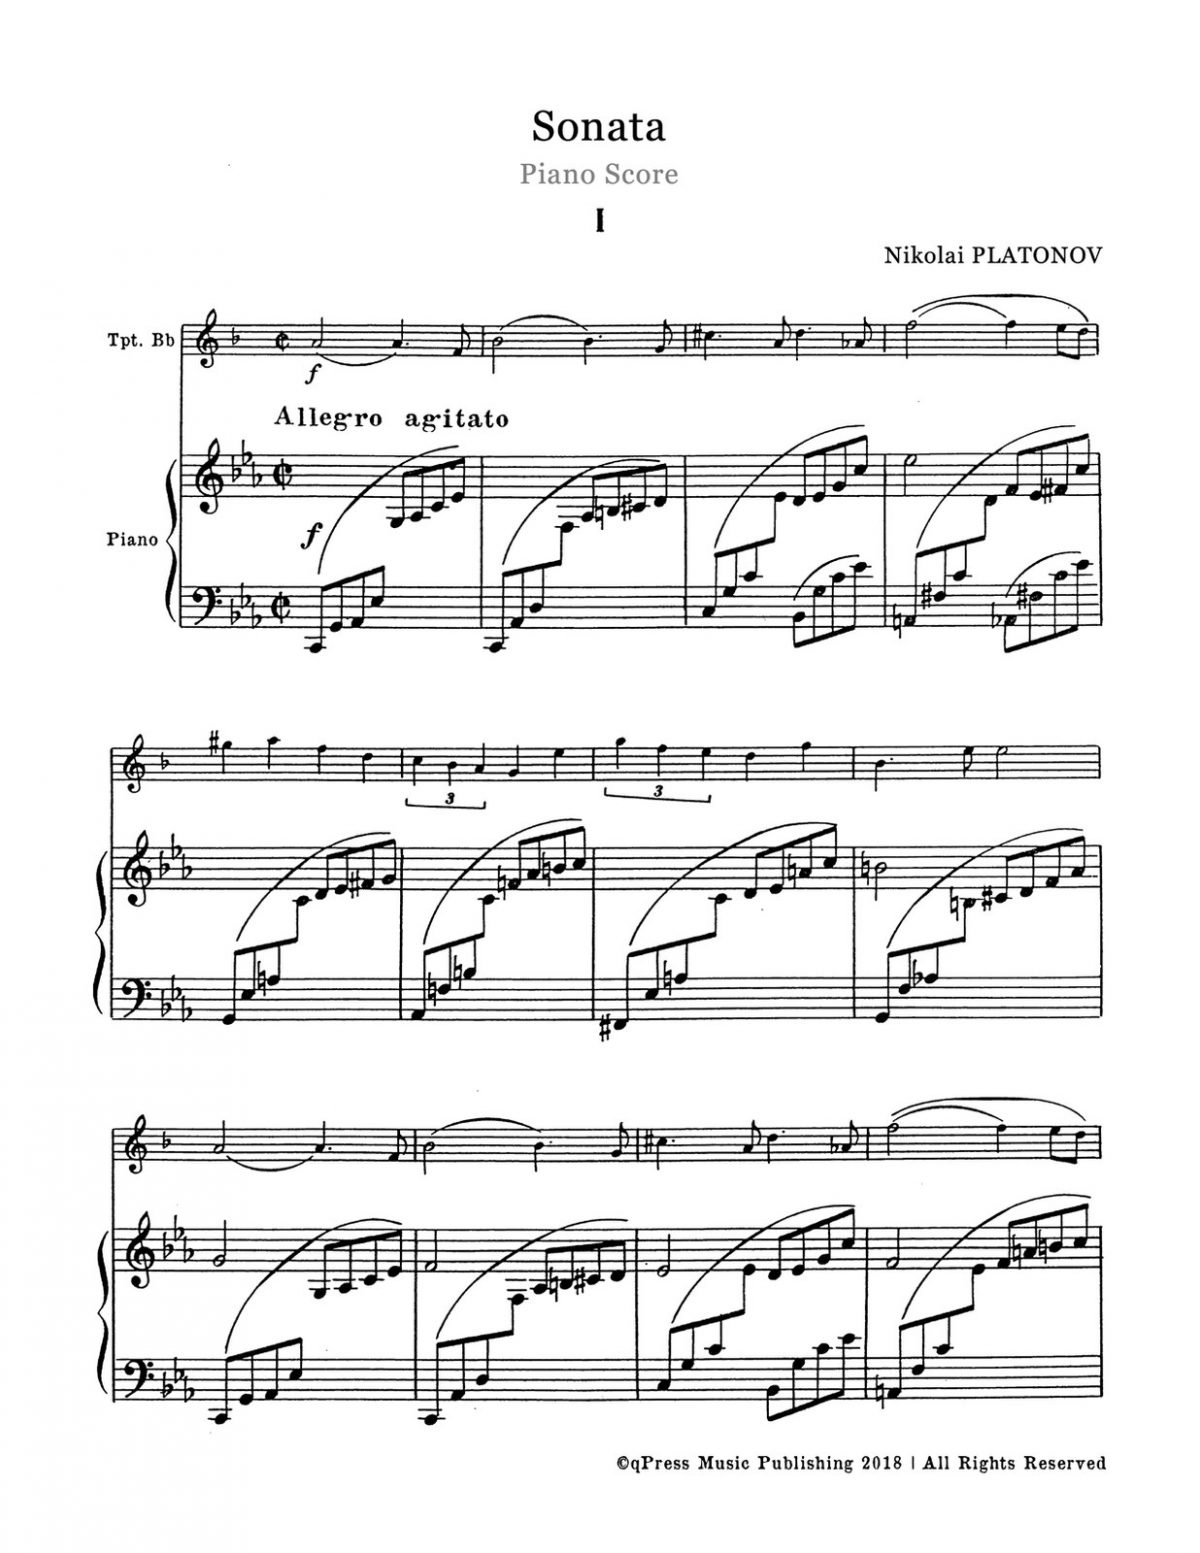 Platonov, Sonata (Score and Part)-p10